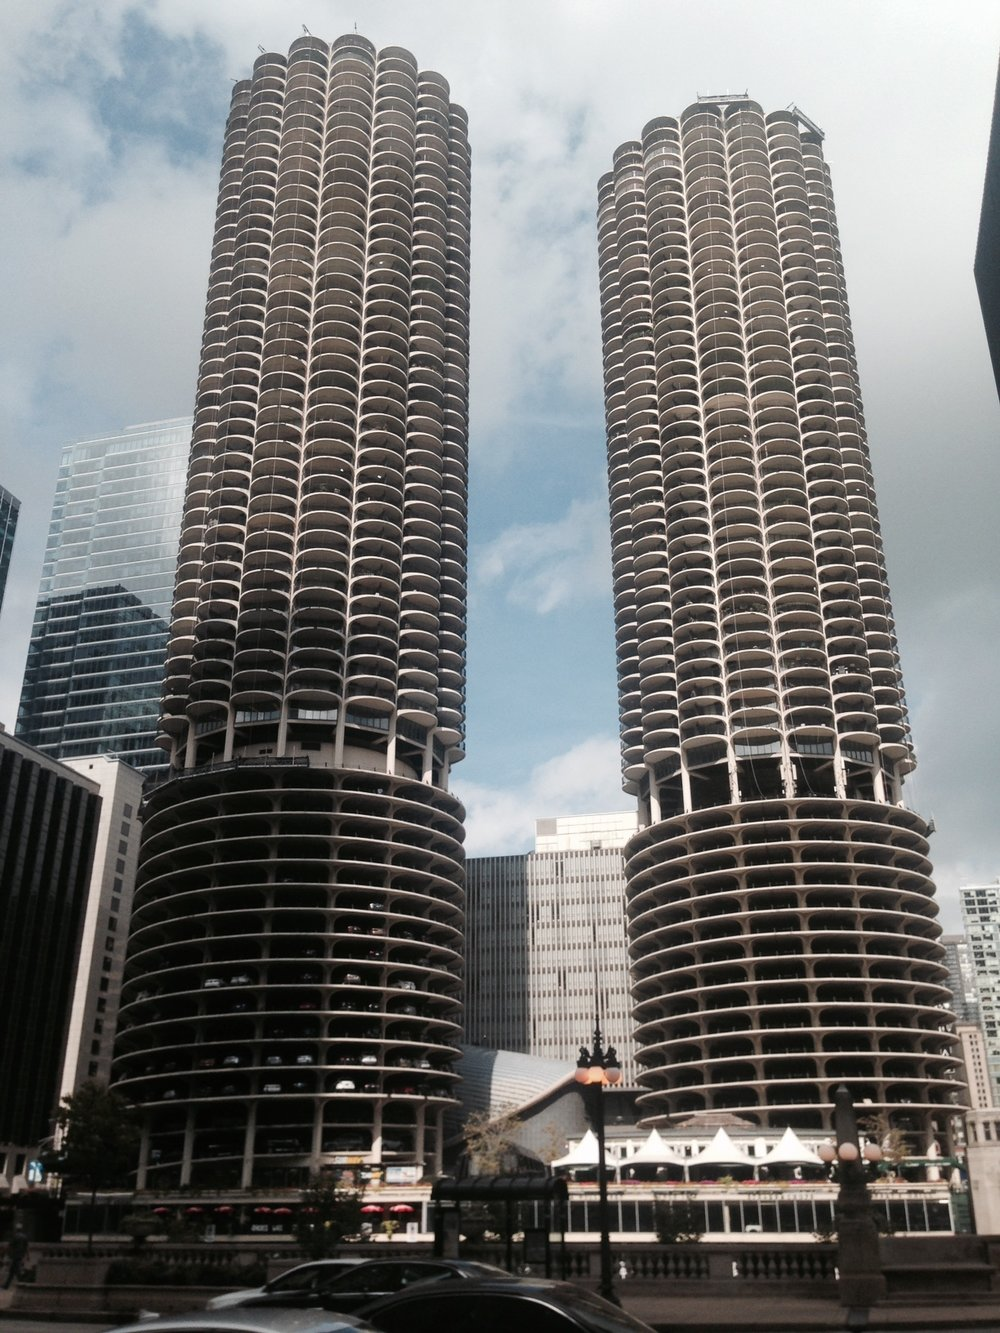 Marina City.  I remember the opening shots every week of the Bob Newhart show and these buildings up the view of the river.  Iconic